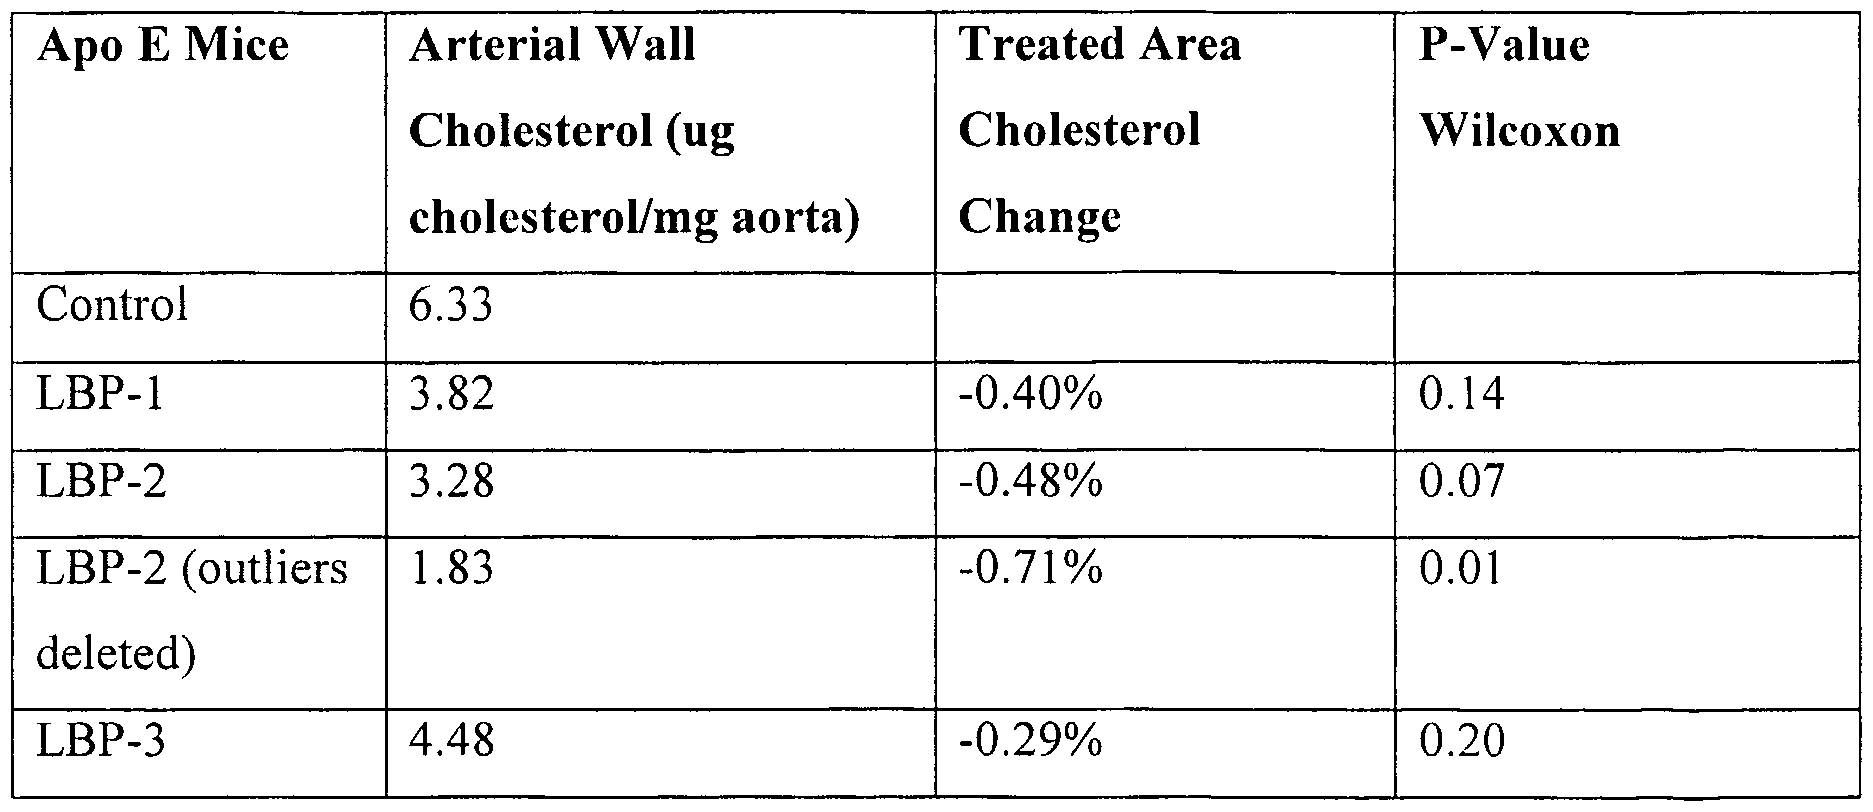 WO2001064874A9 - Low density liprotein binding proteins and